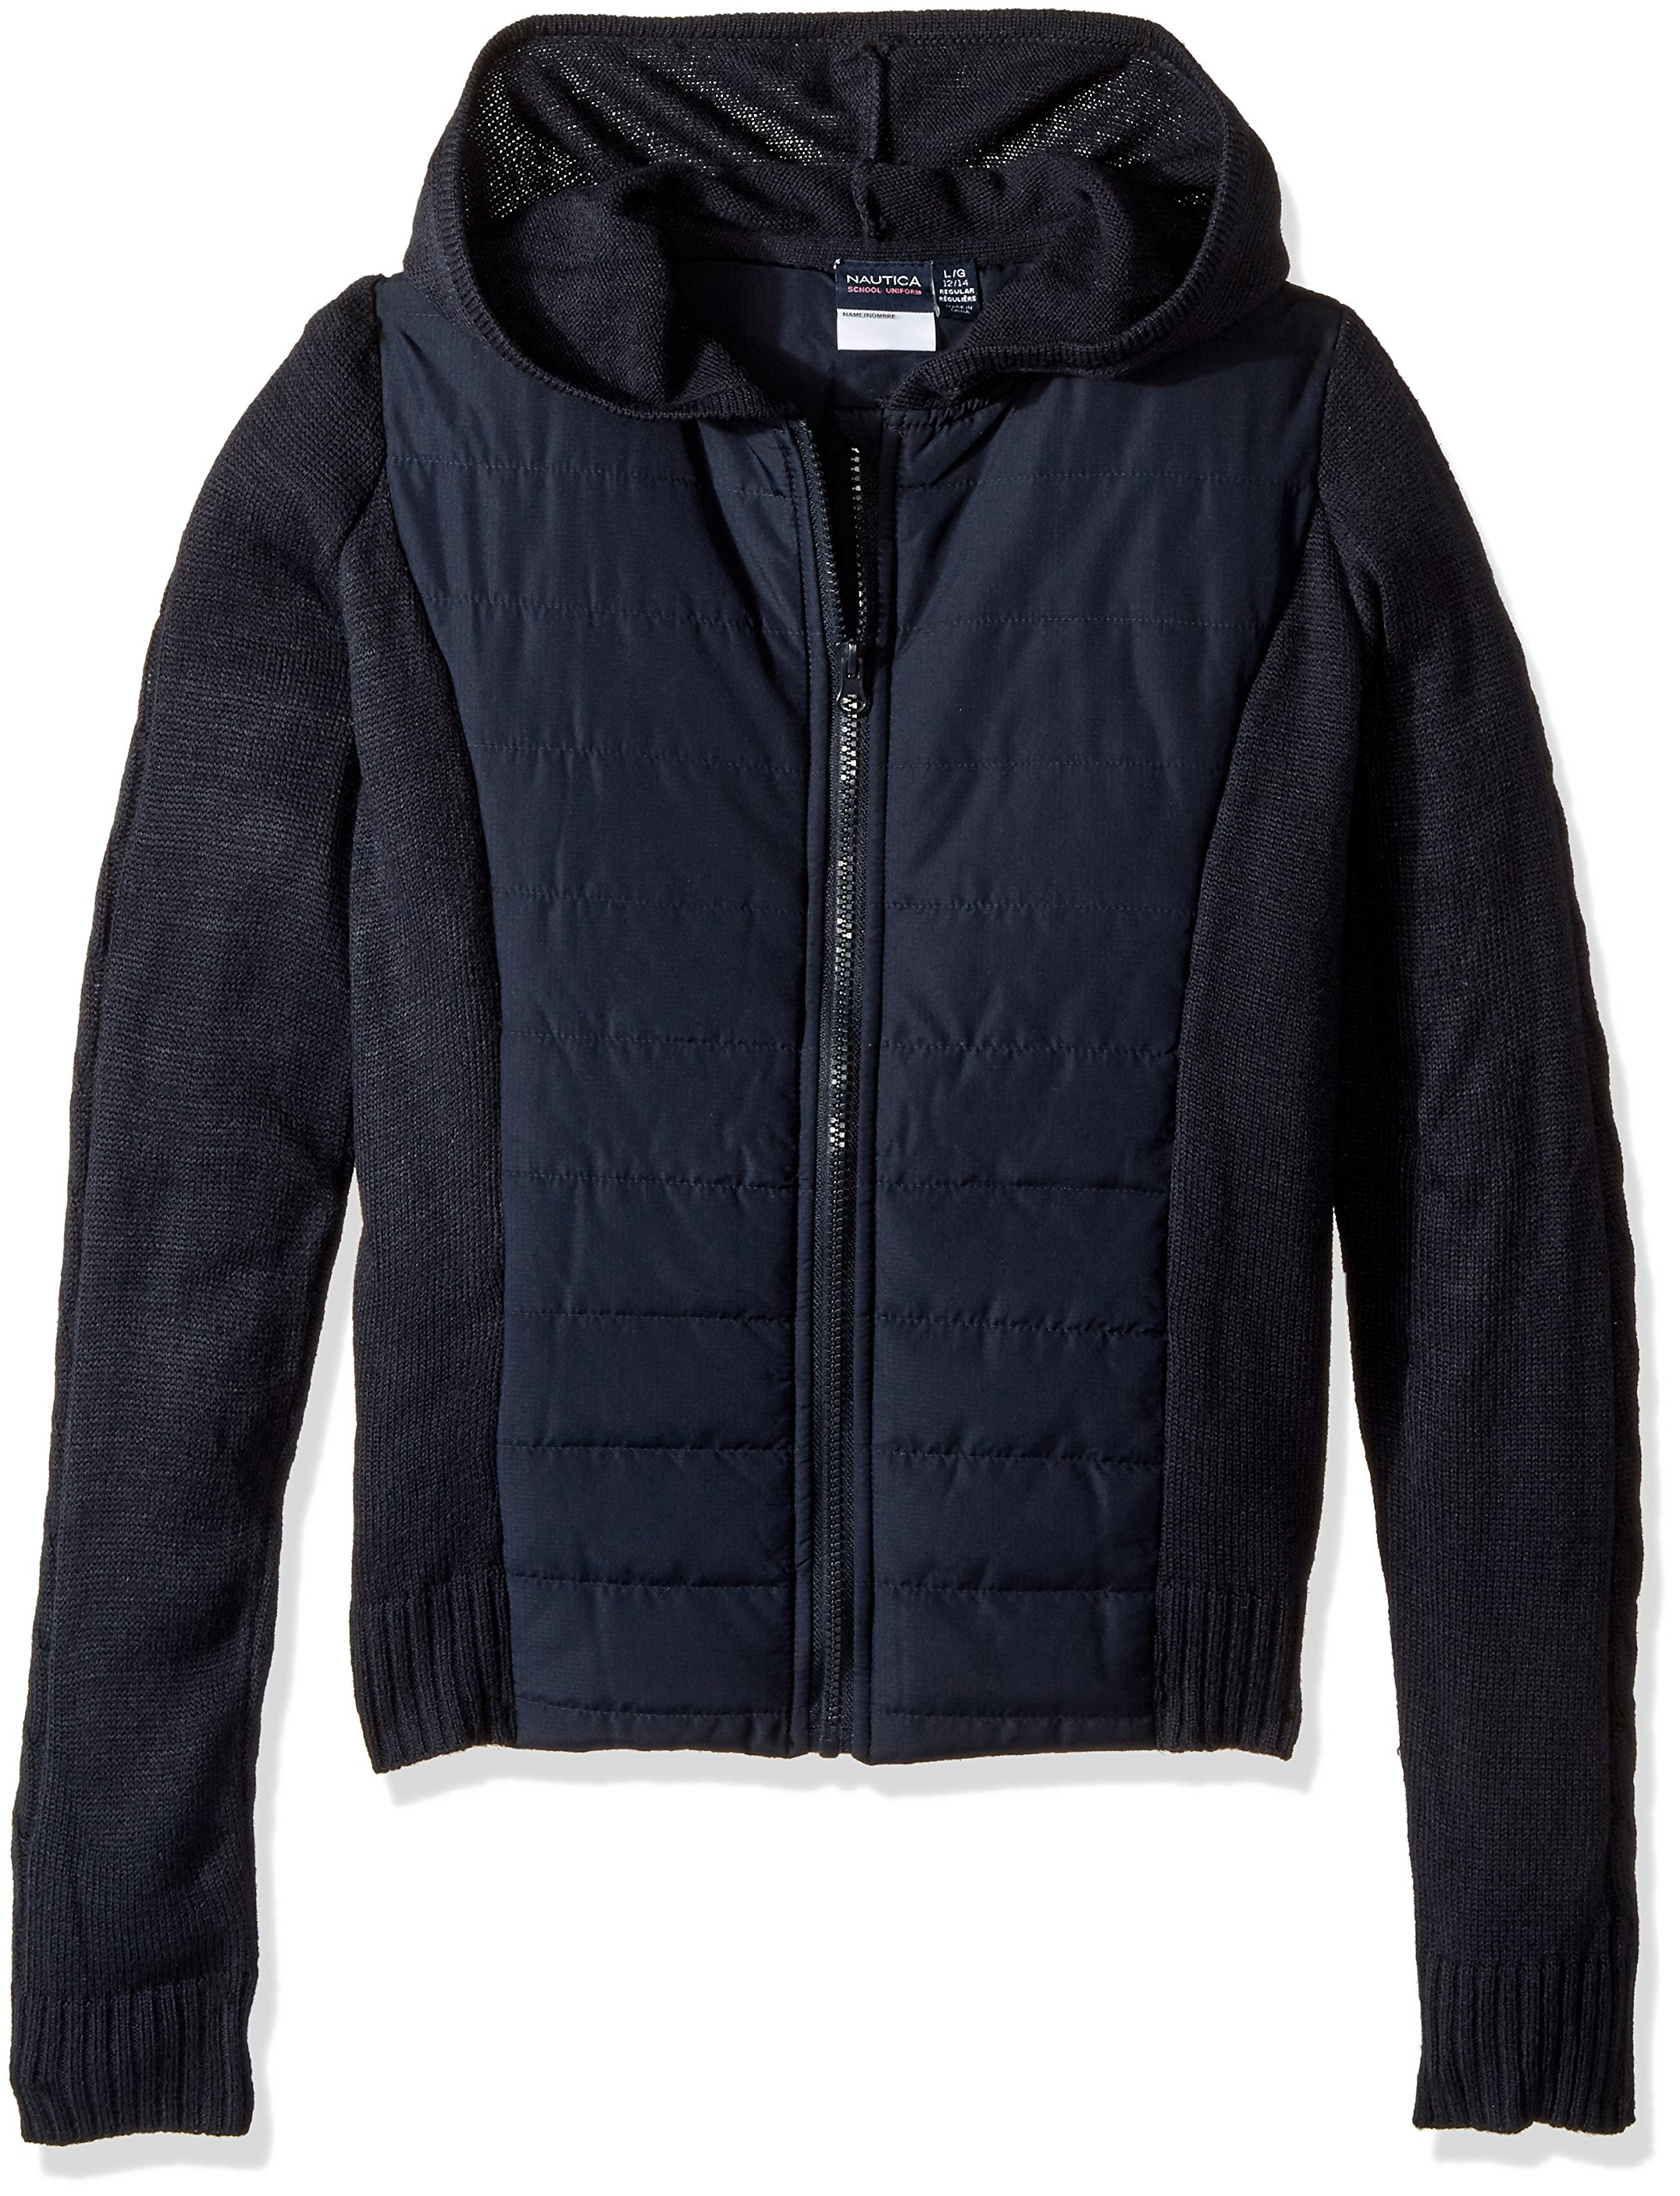 Nautica Girls Size' School Uniform Quilted Hoodie Sweater, Navy, X-Large(16.5/18.5) Plus by Nautica (Image #1)